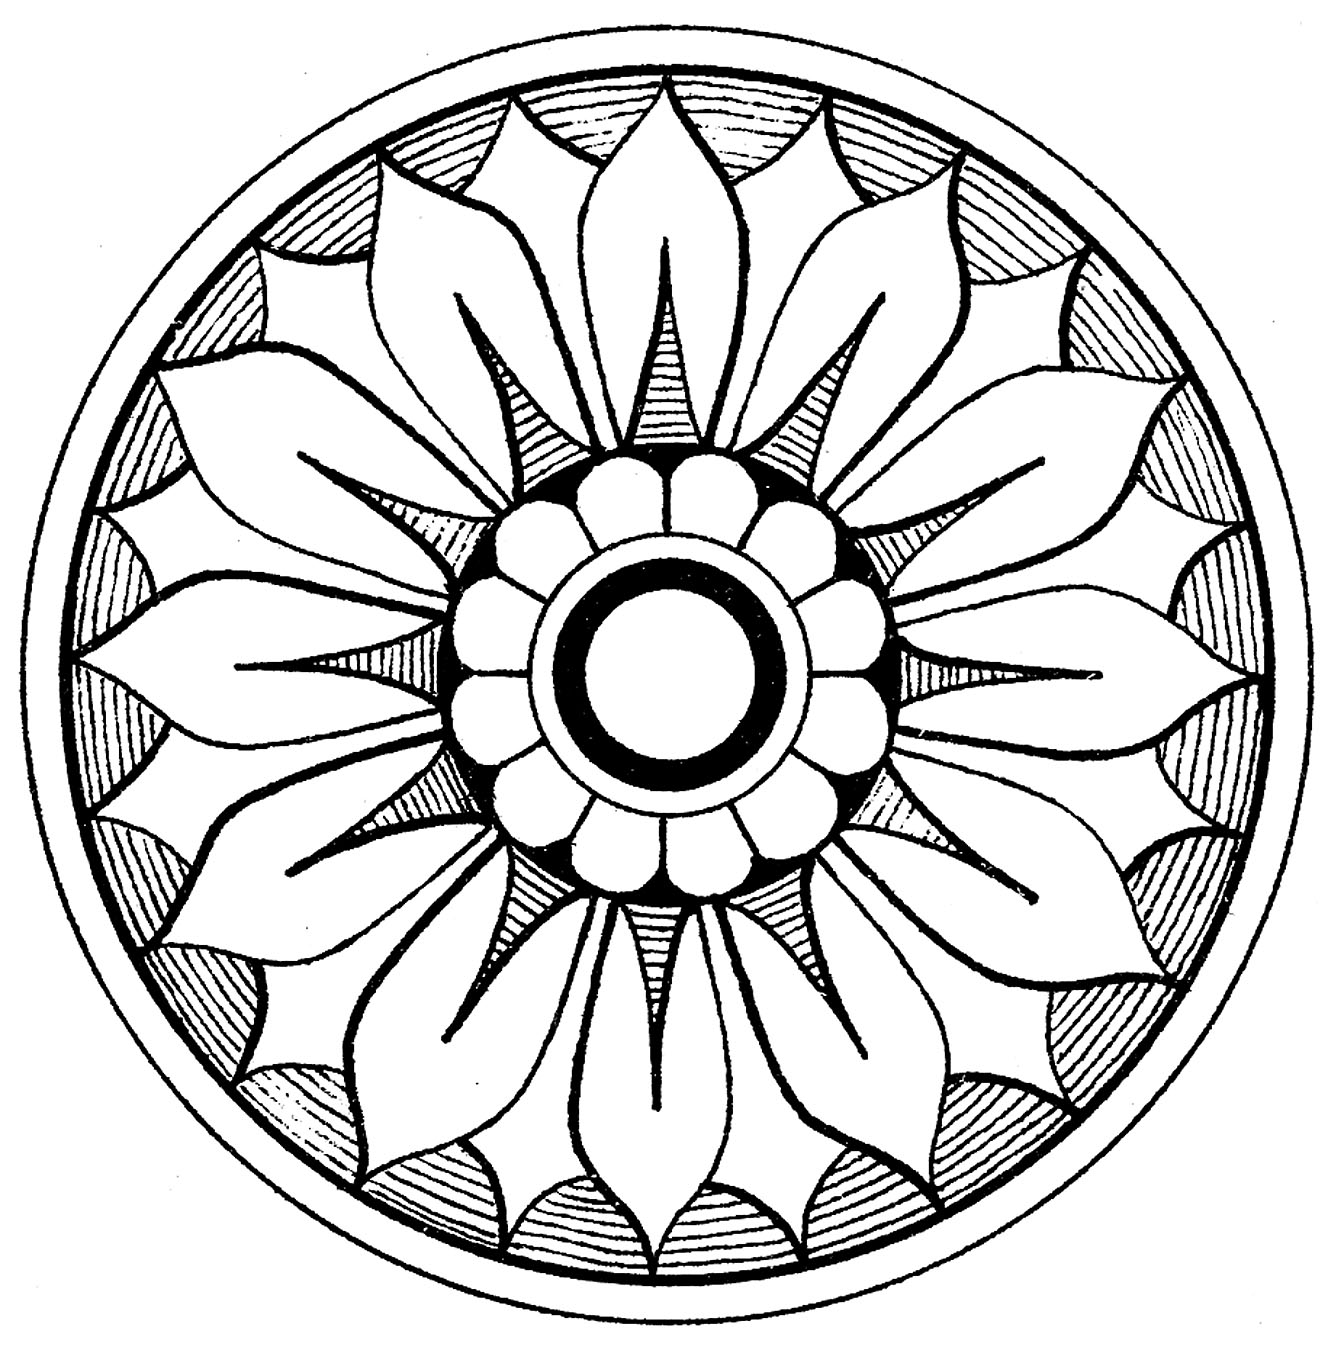 graphic design coloring pages - photo#18